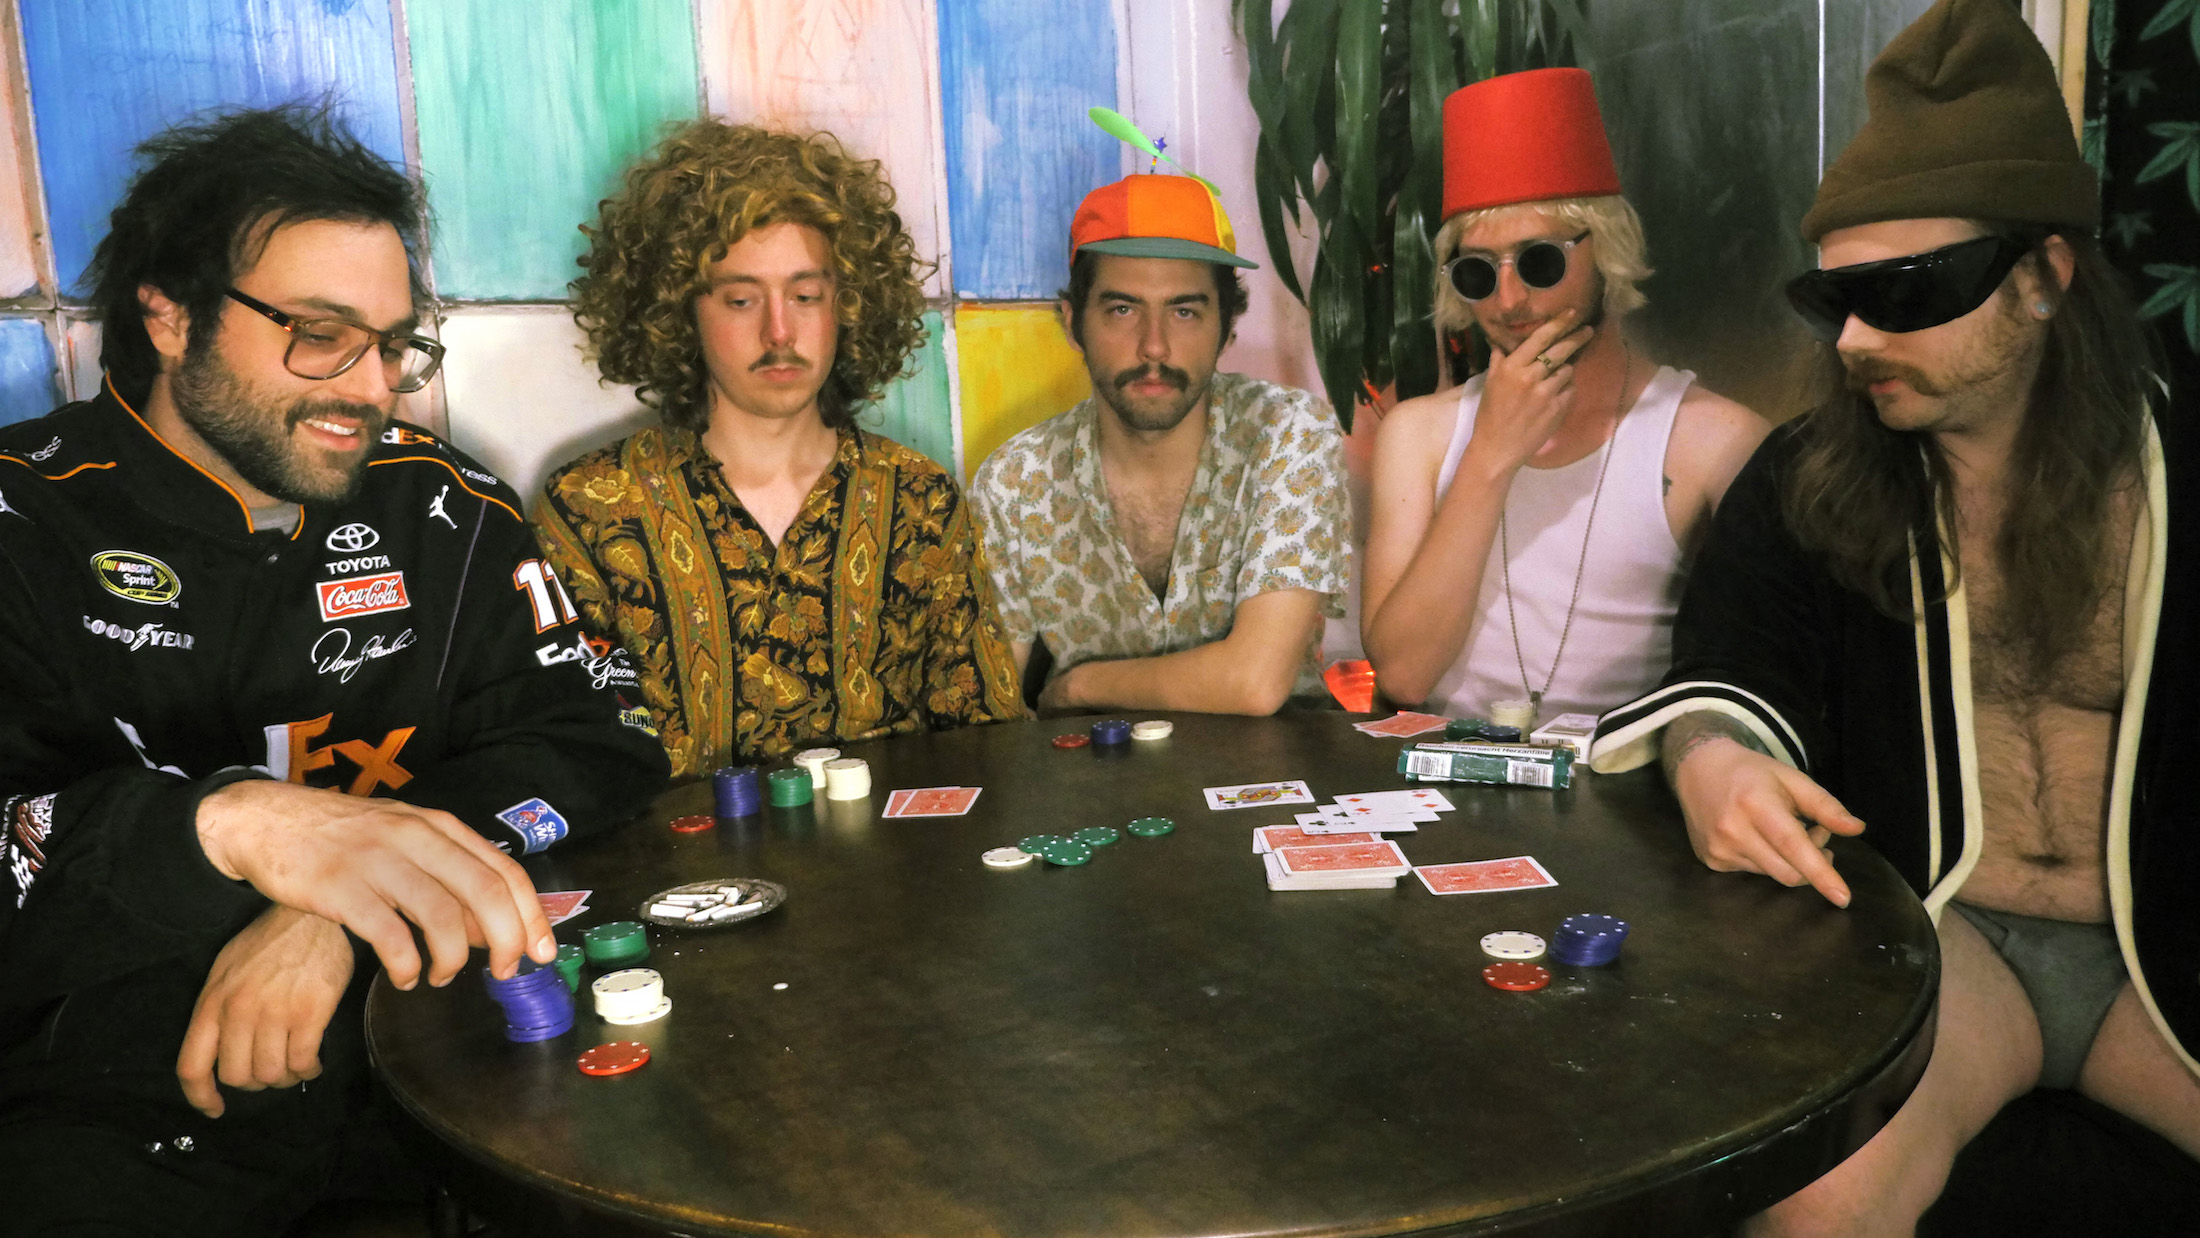 MHC as Dogs Playing Poker, with Alexander Brettin at center